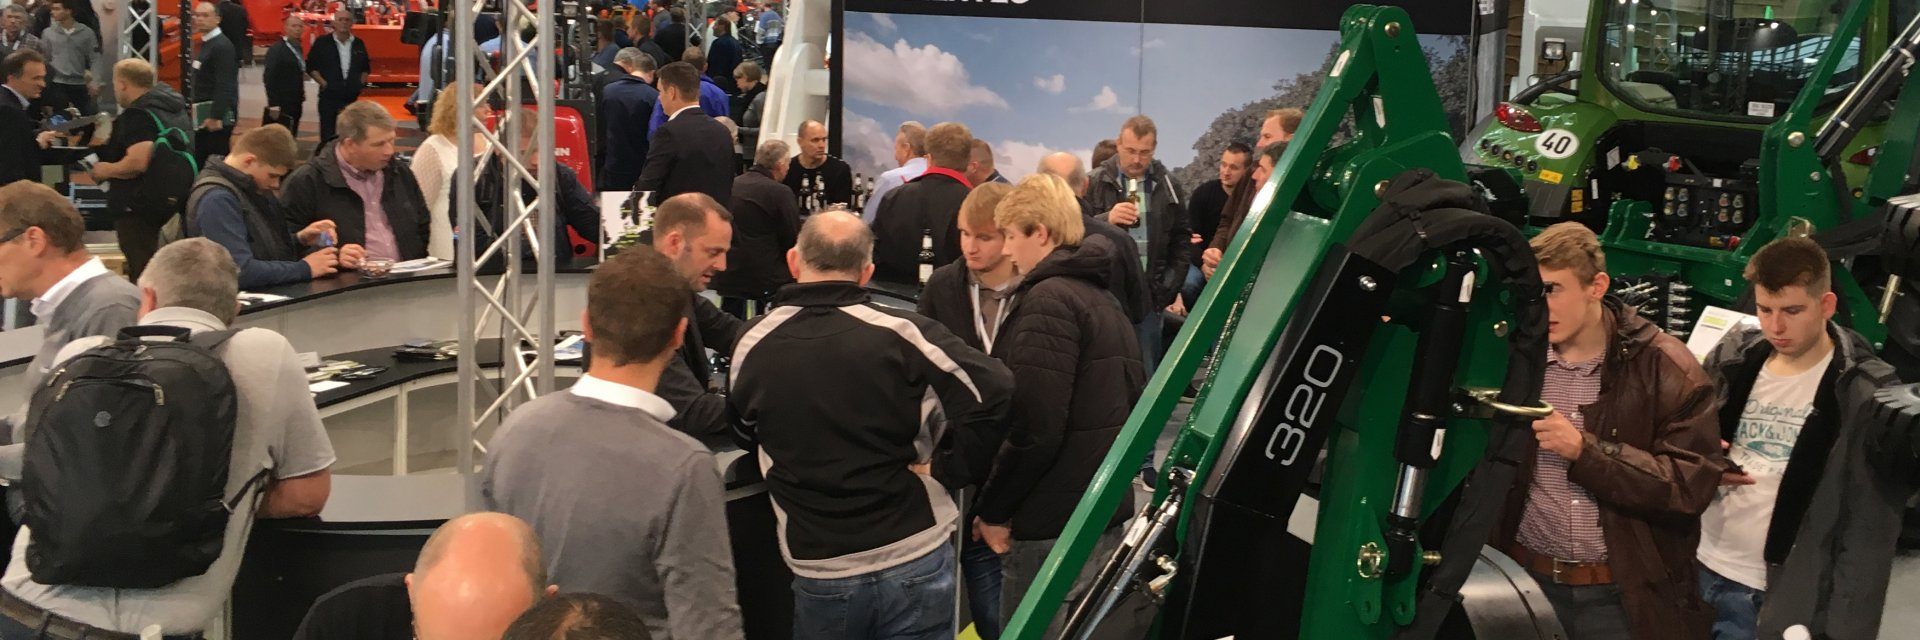 We would like to thank all that visited our booth at Agritechnica. We had many good talks with existing and new contacts and look forward to hearing from you again.